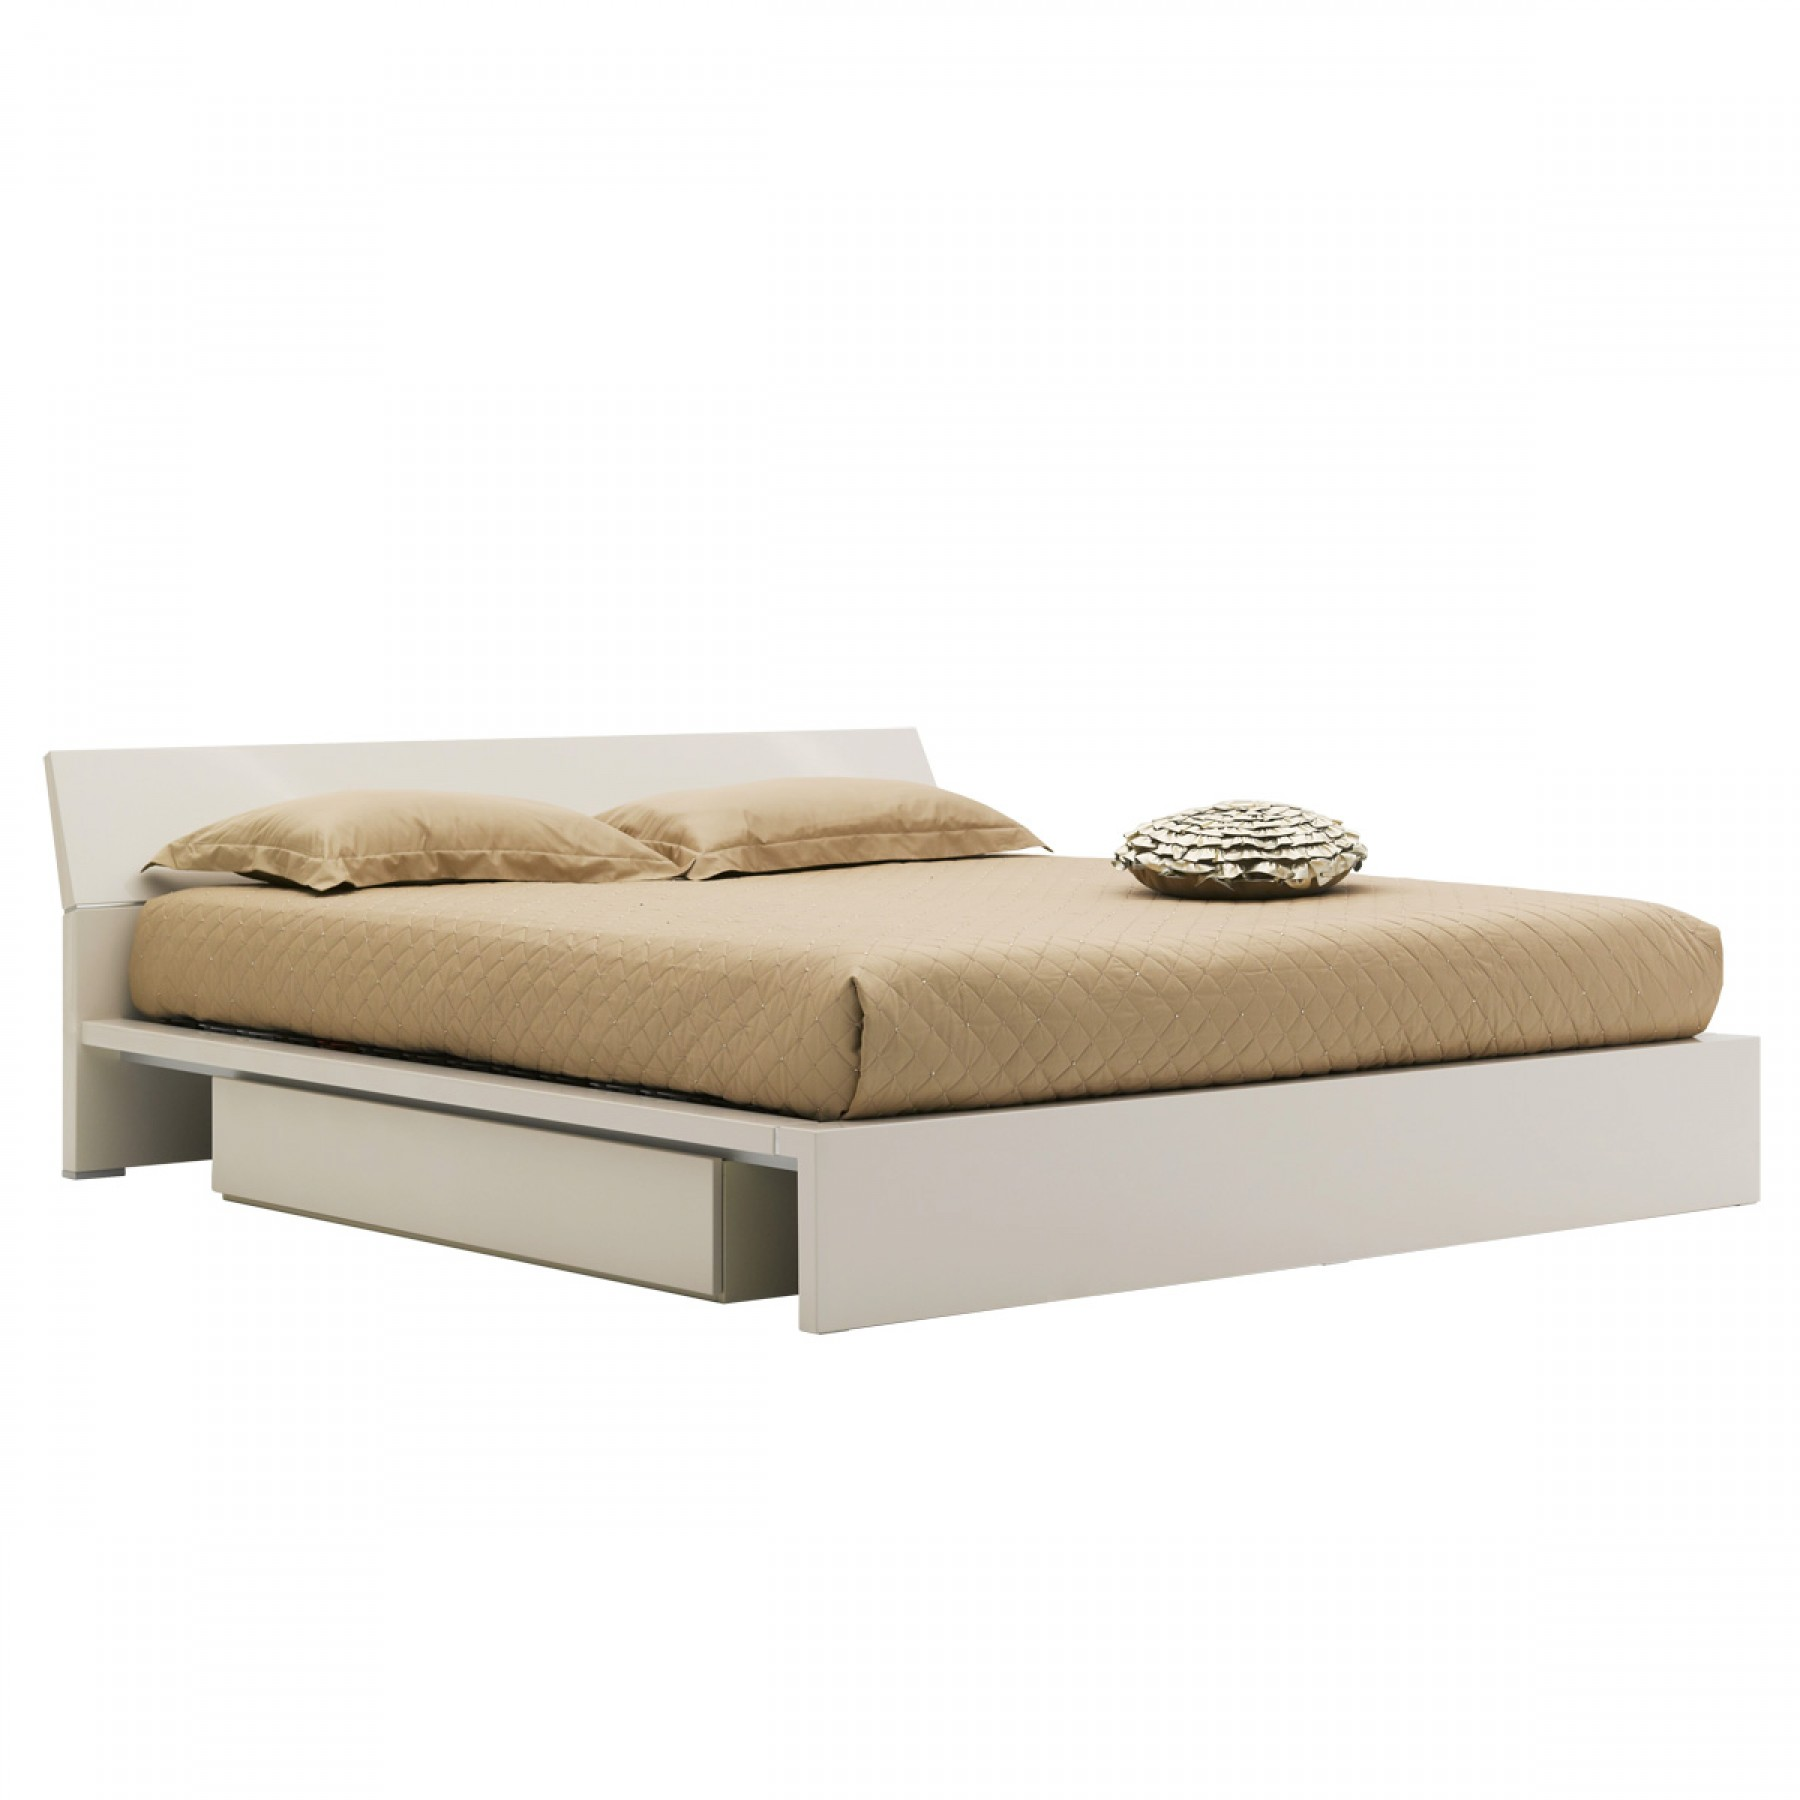 Storage Beds Australia Cassetti Storage Bed Beyond Furniture